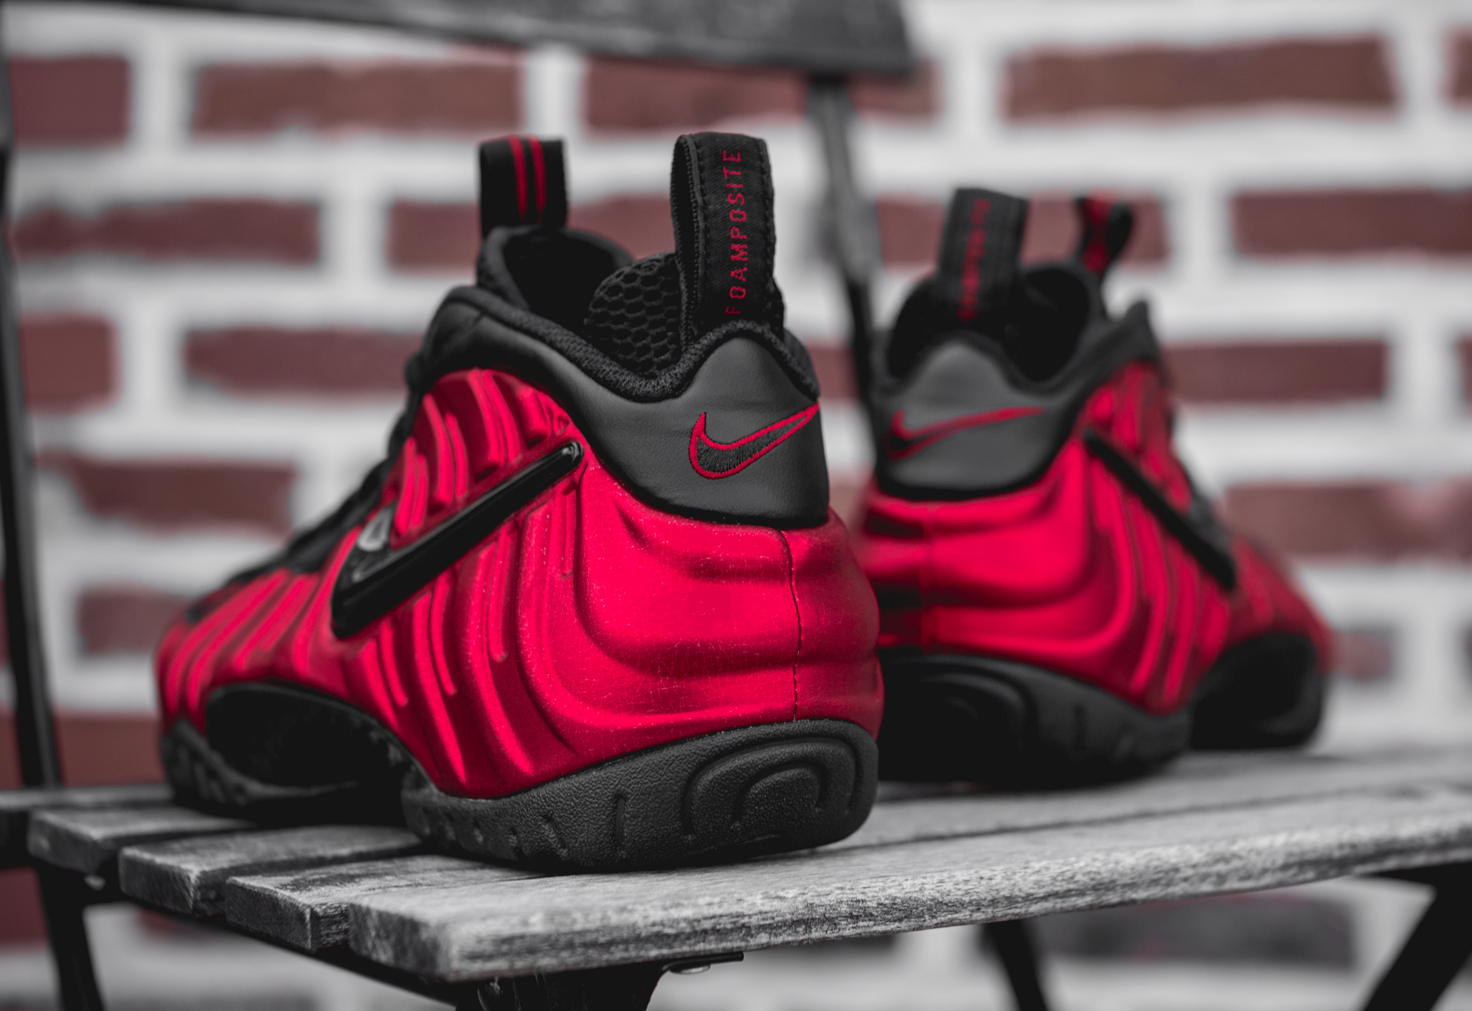 Chaussure Nike Air Foamposite Pro 'University Red' (3)